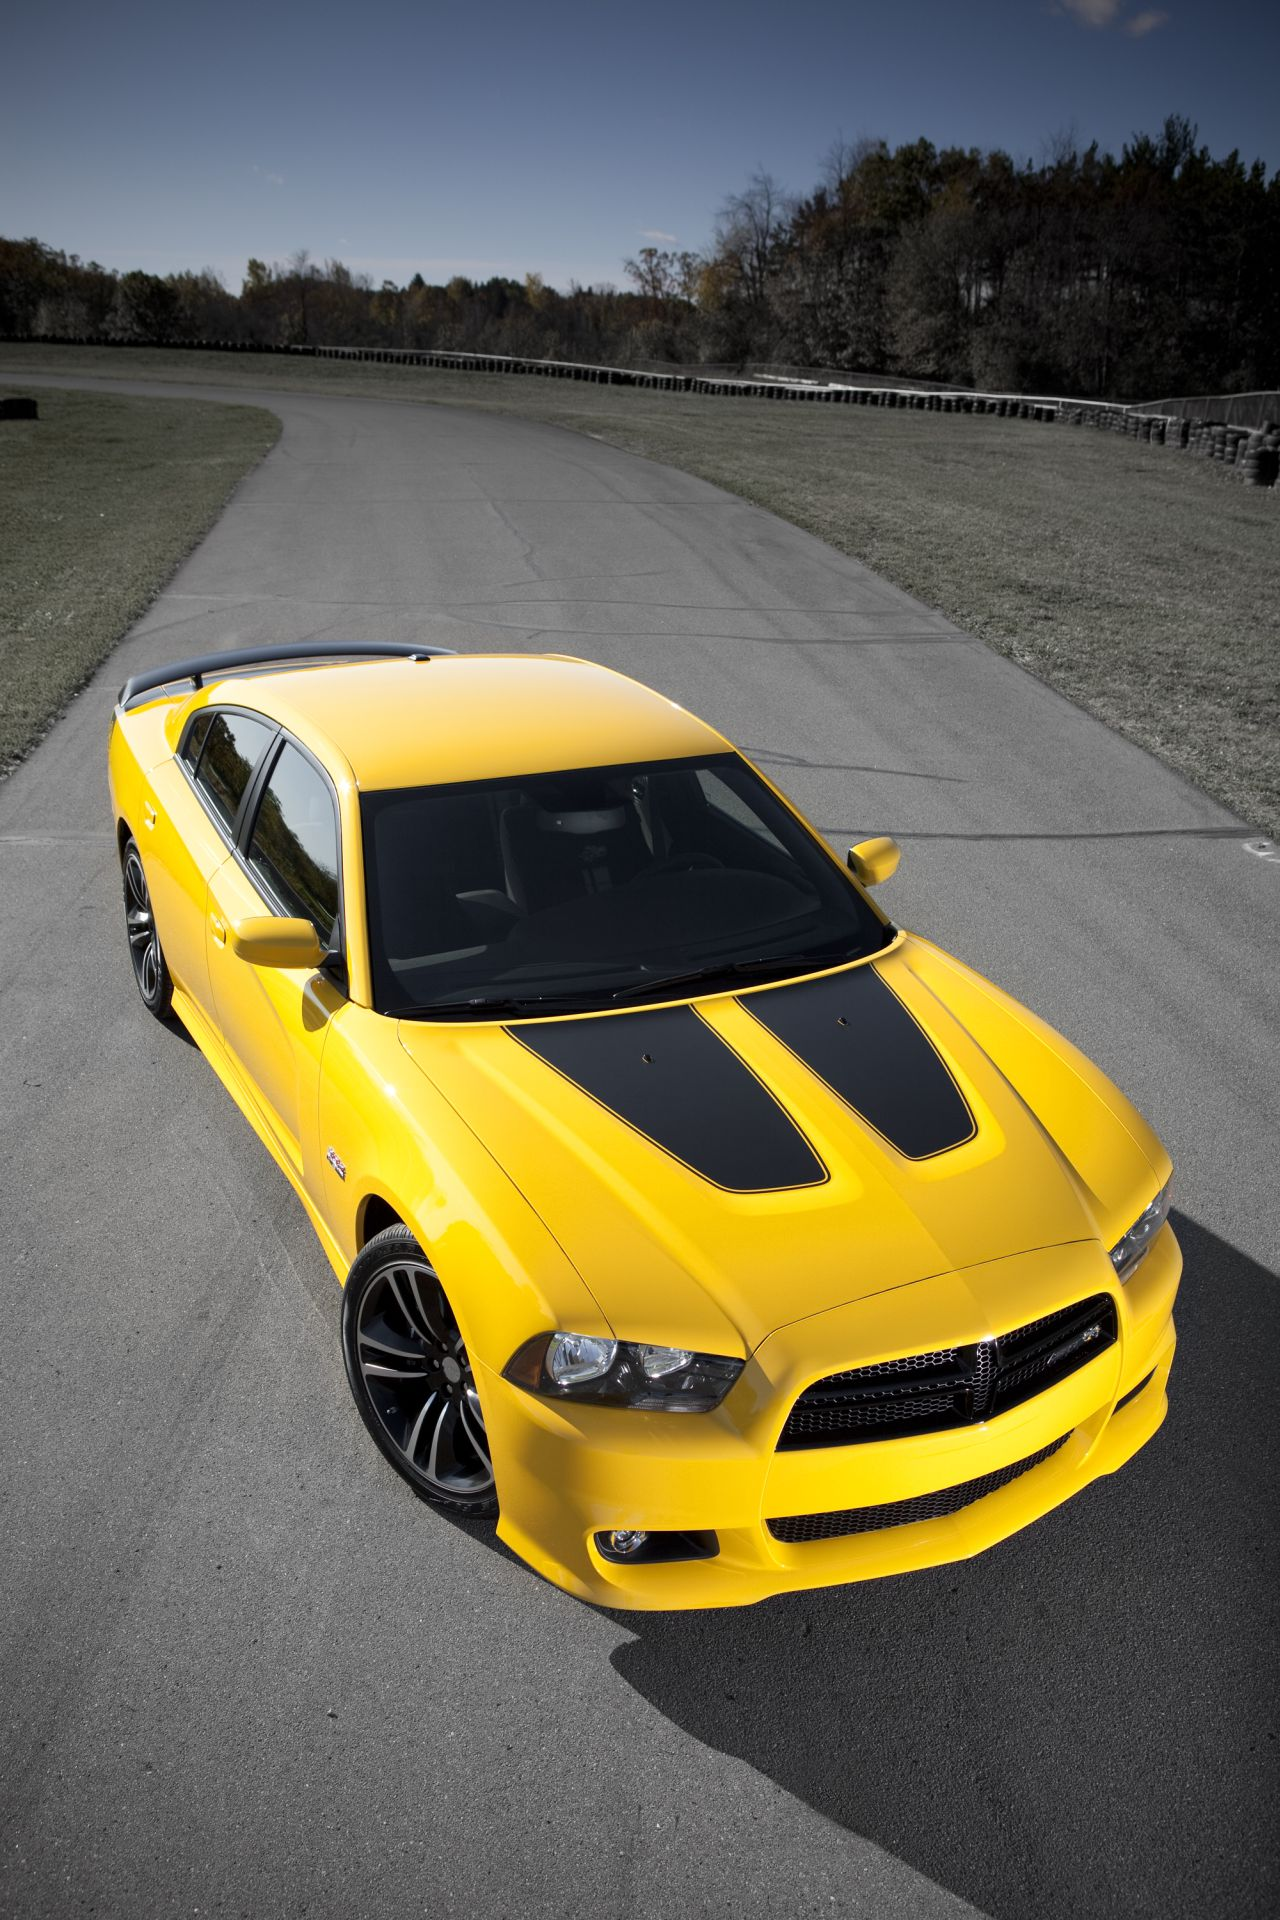 Dodge Challenger Srt8 Yellow Jacket Amp Charger Yellow Bee